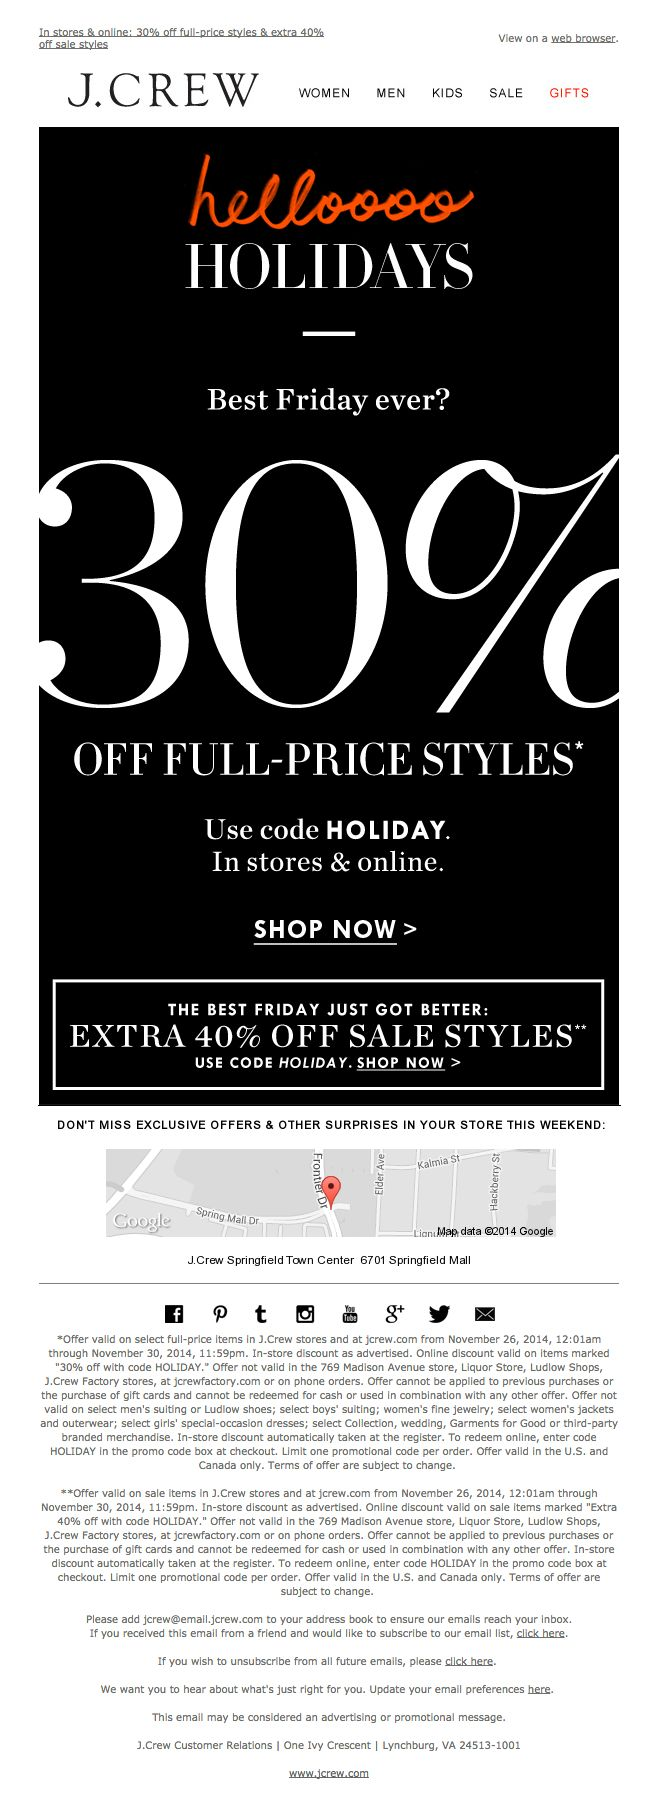 """J.Crew Black Friday email - Nov. 28, 2014 - """"Today is THE day to shop: 30% off, in stores & online"""" - Same email with minor text differences (code) sent on Nov. 24, 2014 with subject line of: """"Helloooo, holidays: 30% off your entire purchase"""""""